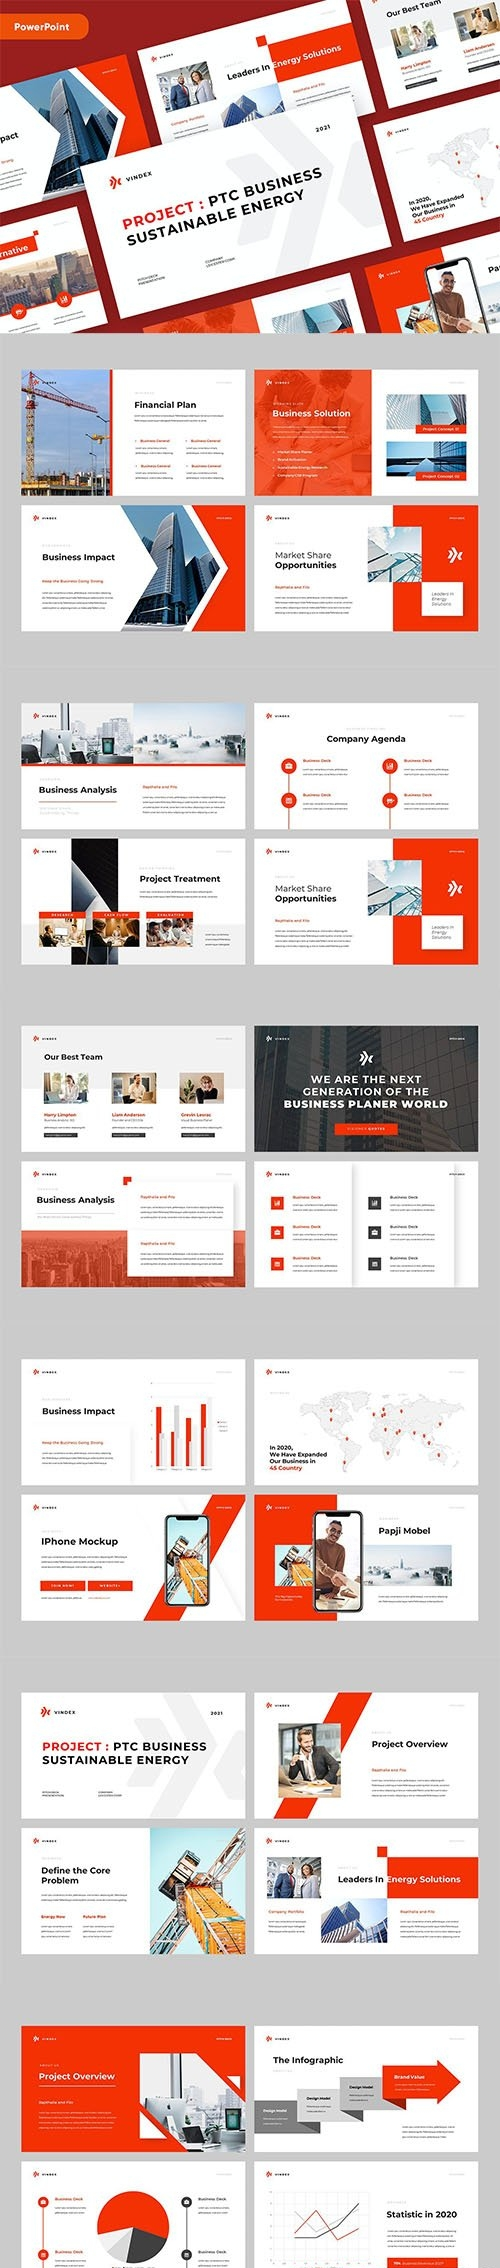 VINDEX - Business Pitch Powerpoint Template